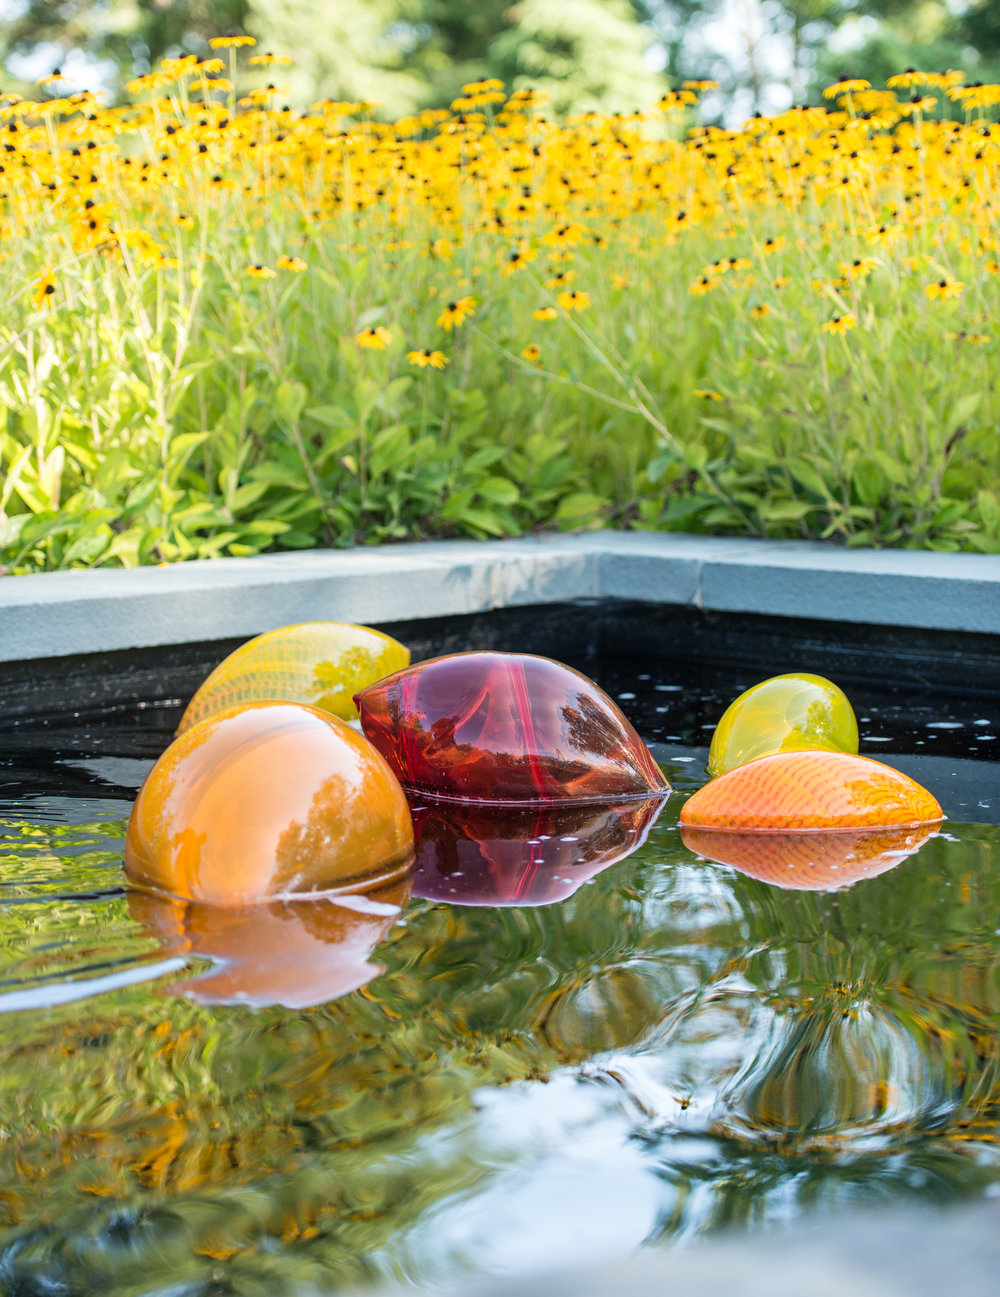 Koi glass floats arranged in the reflective pool